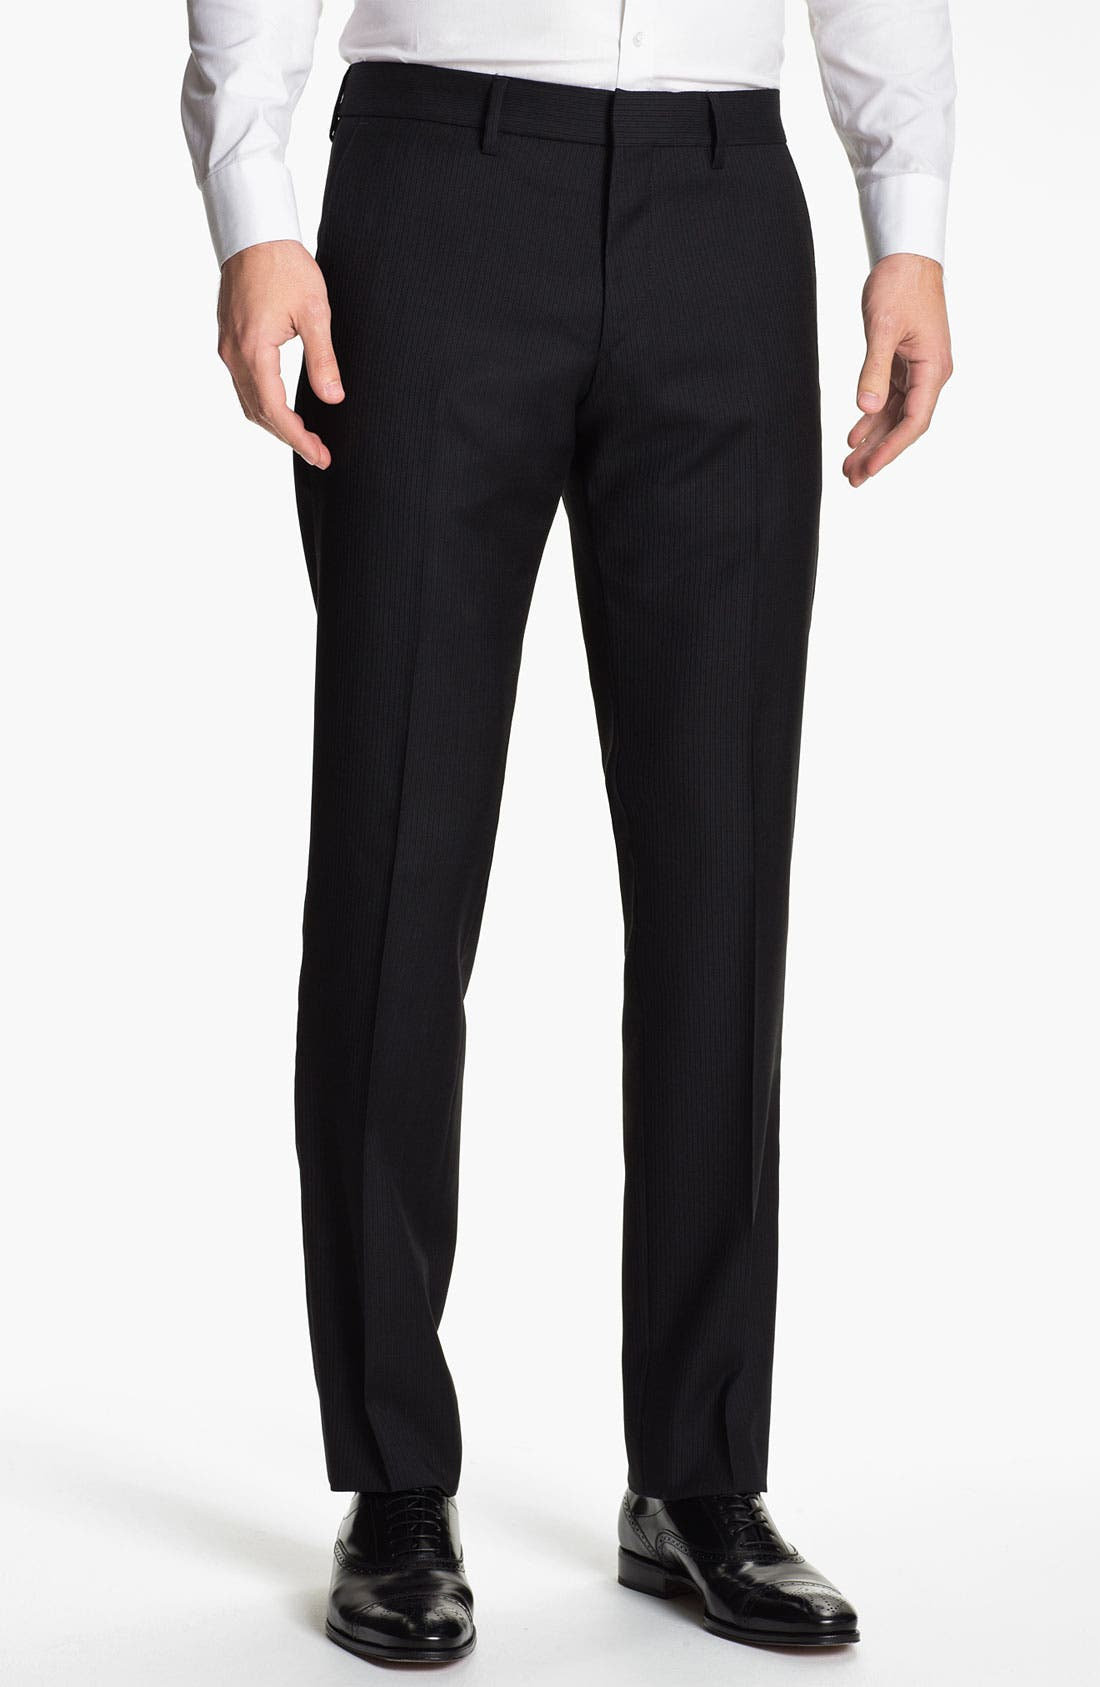 Main Image - BOSS Black 'Crigan' Pinstriped Flat Front Wool Trousers